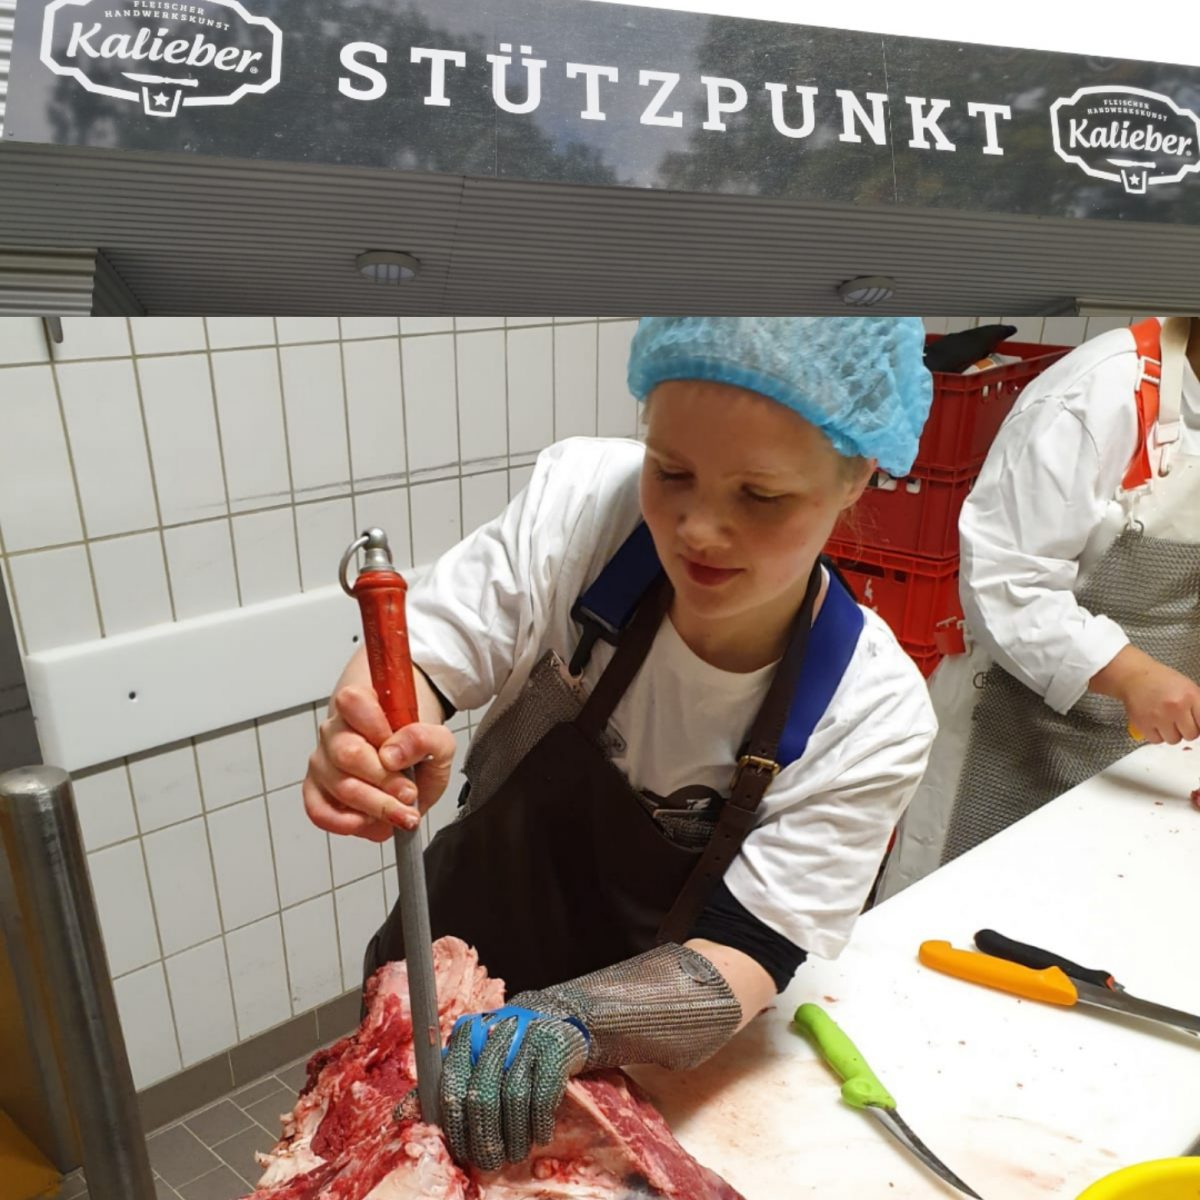 5. Training: Butcher Wolf Pack in Lastrup